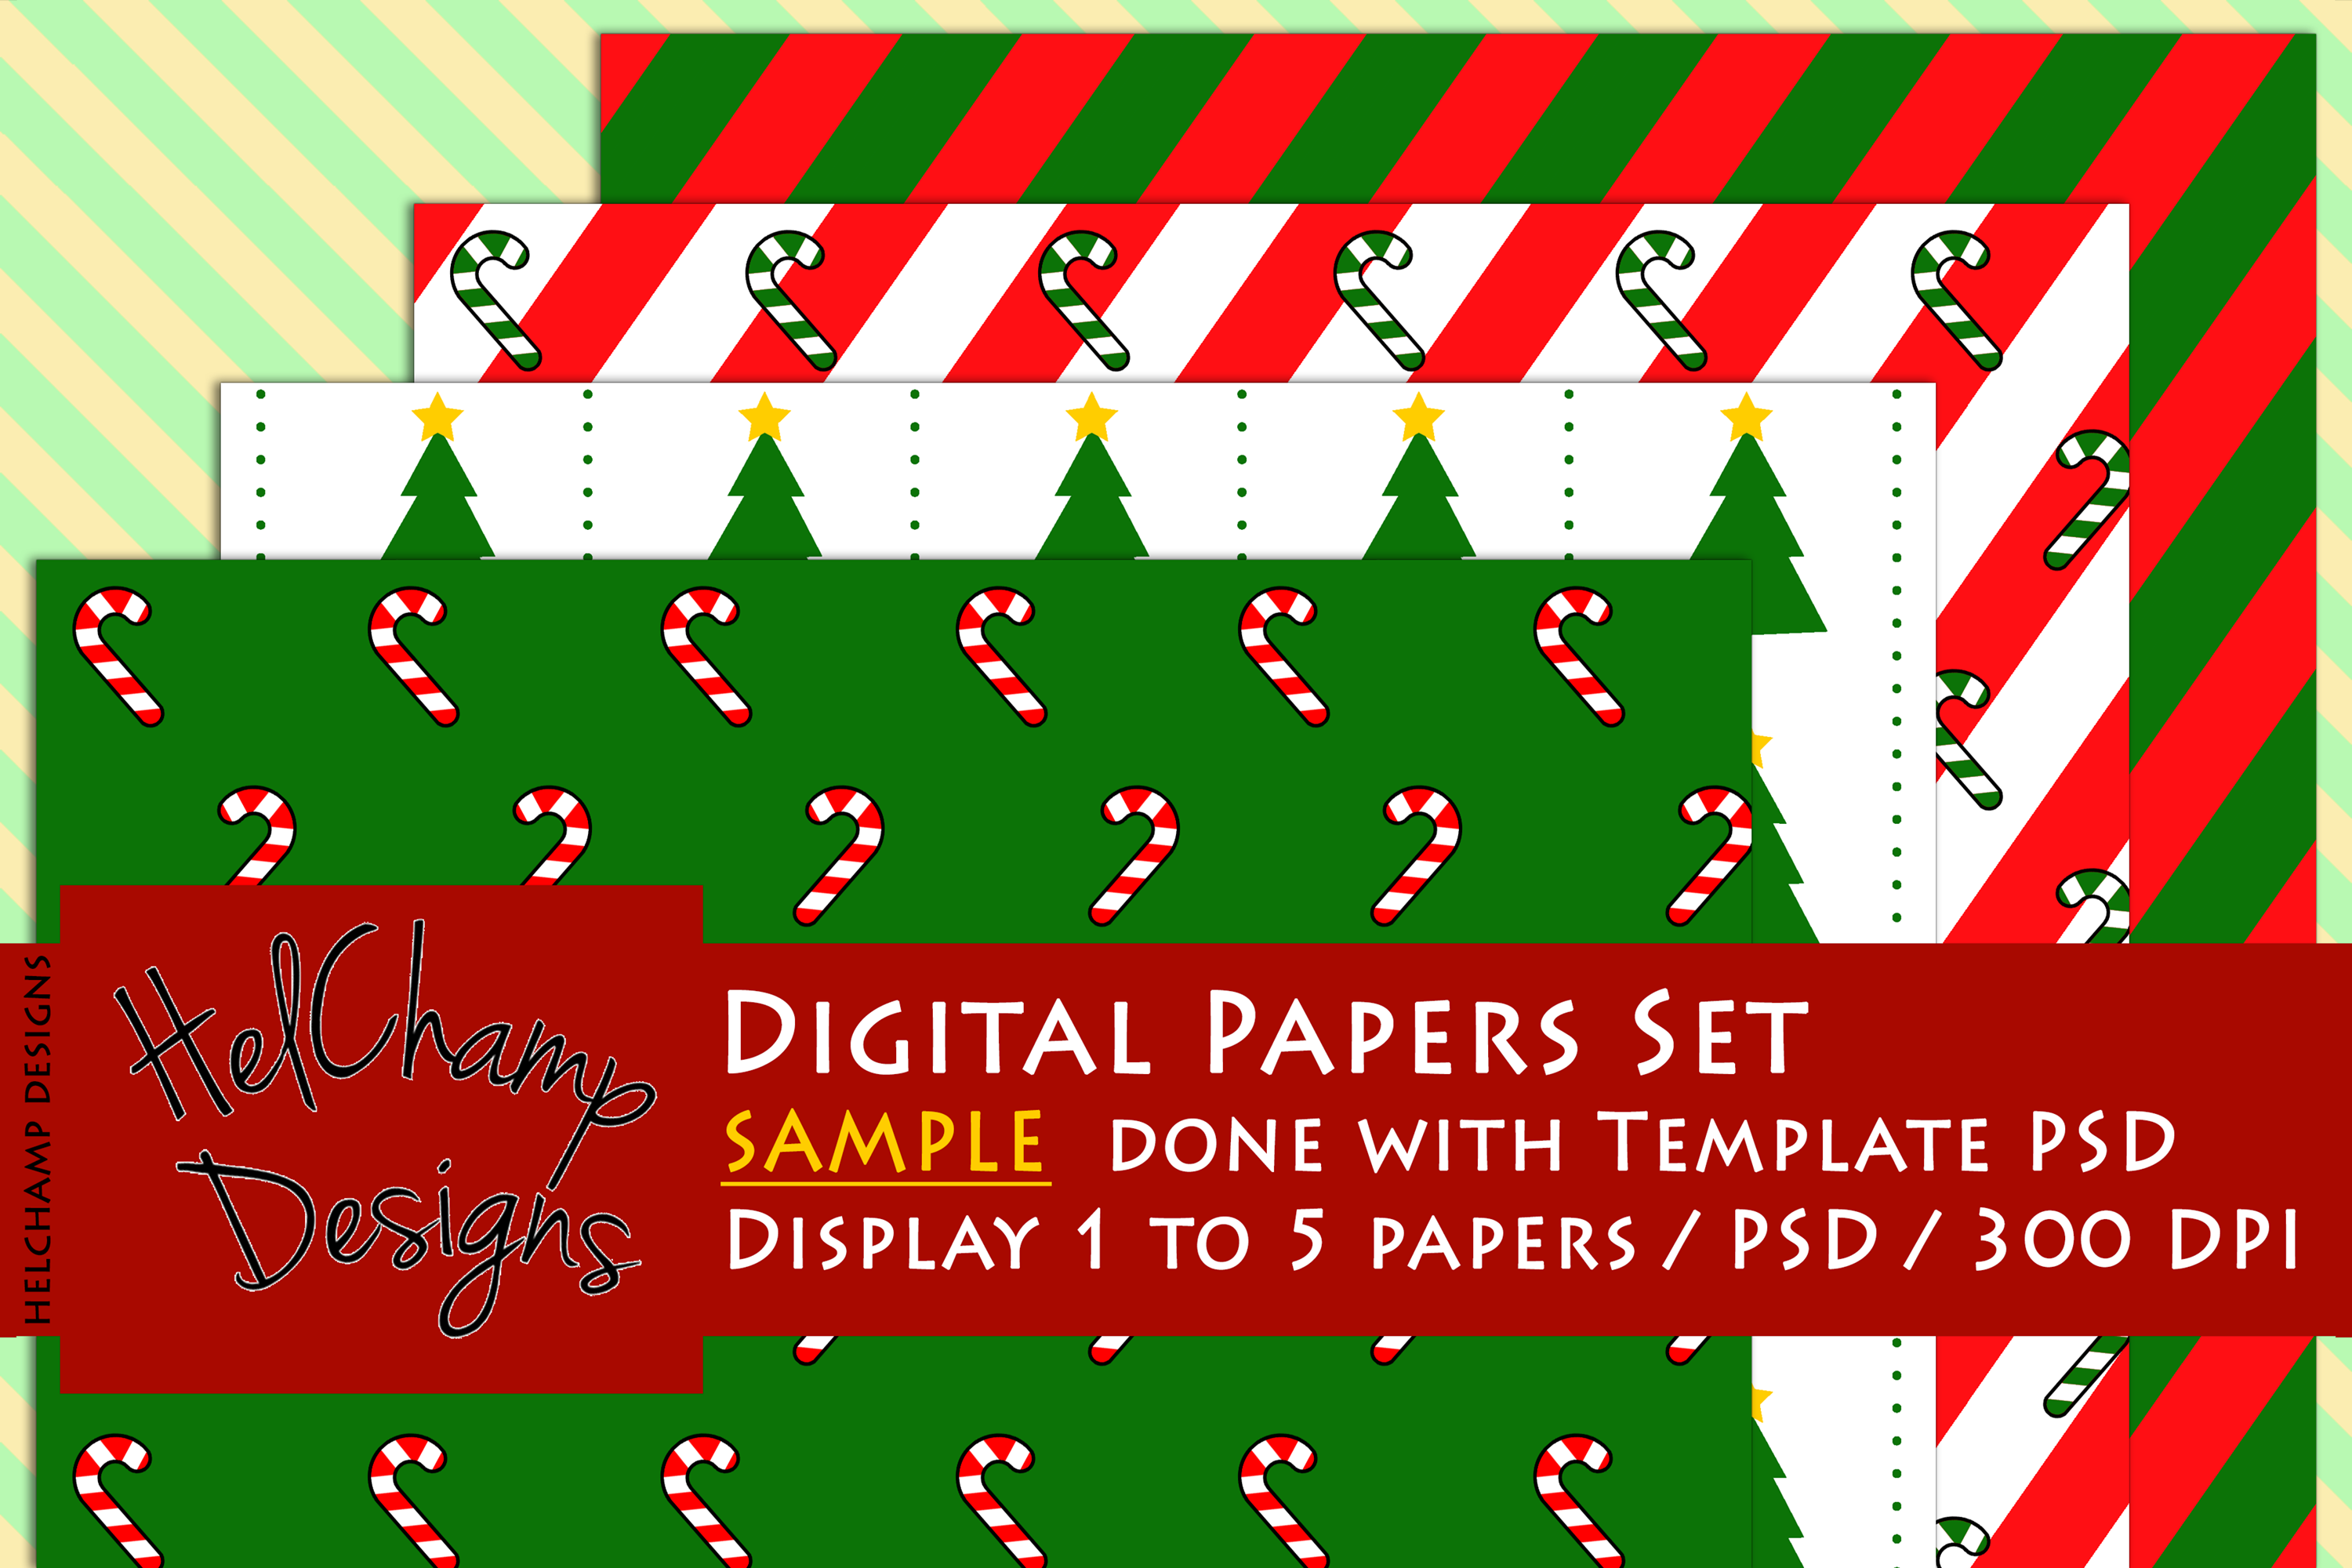 1 to 5 Panels Mockup for Digital Papers - M01 example image 4